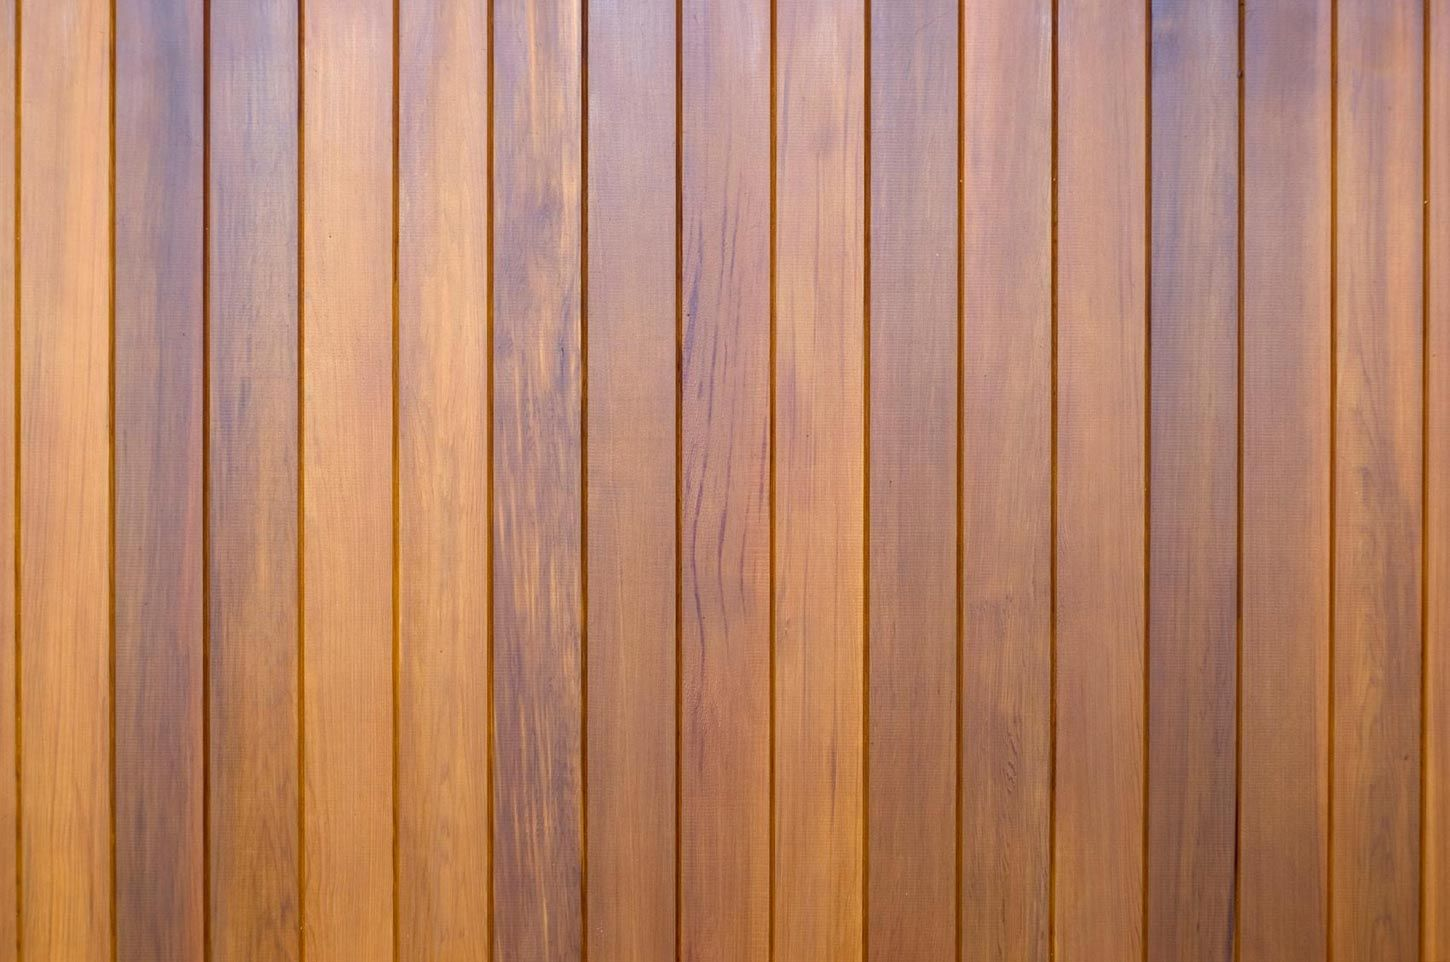 Teak Wood Plank Texture With Natural Patterns Teak Wood